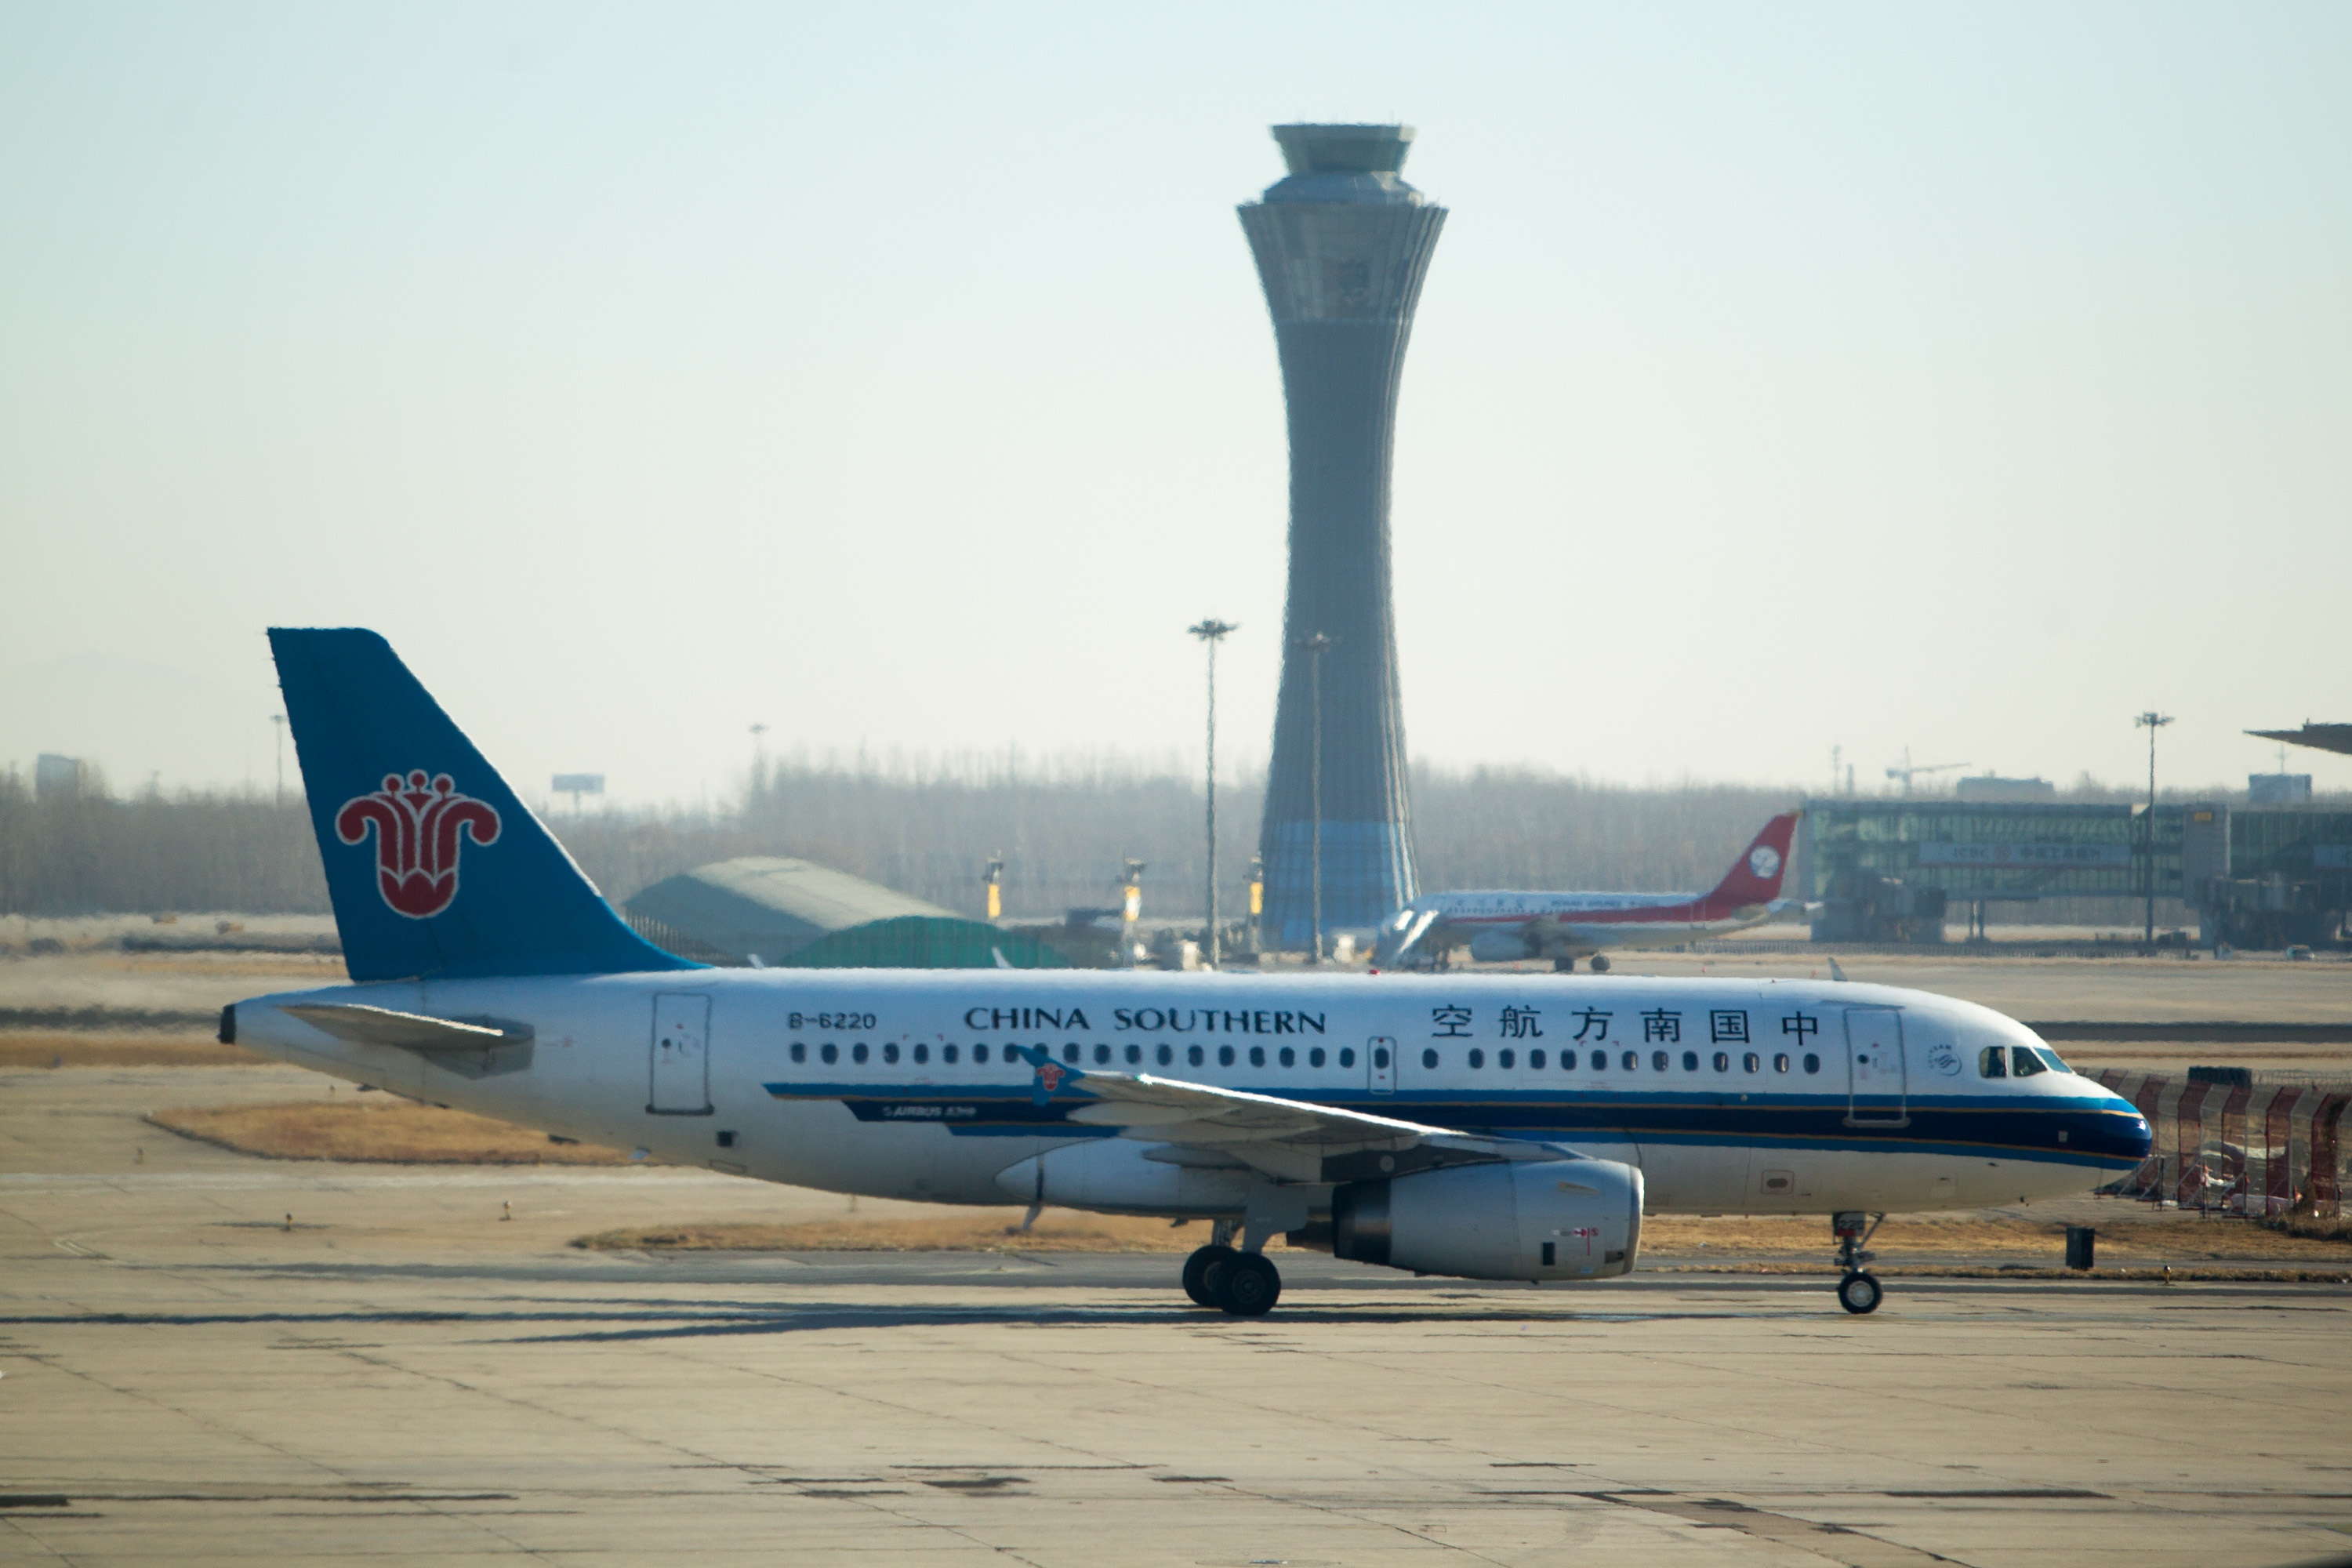 A passenger plane from China Southern Airlines passed through the trajectory of a North Korean missile minutes after it was fired